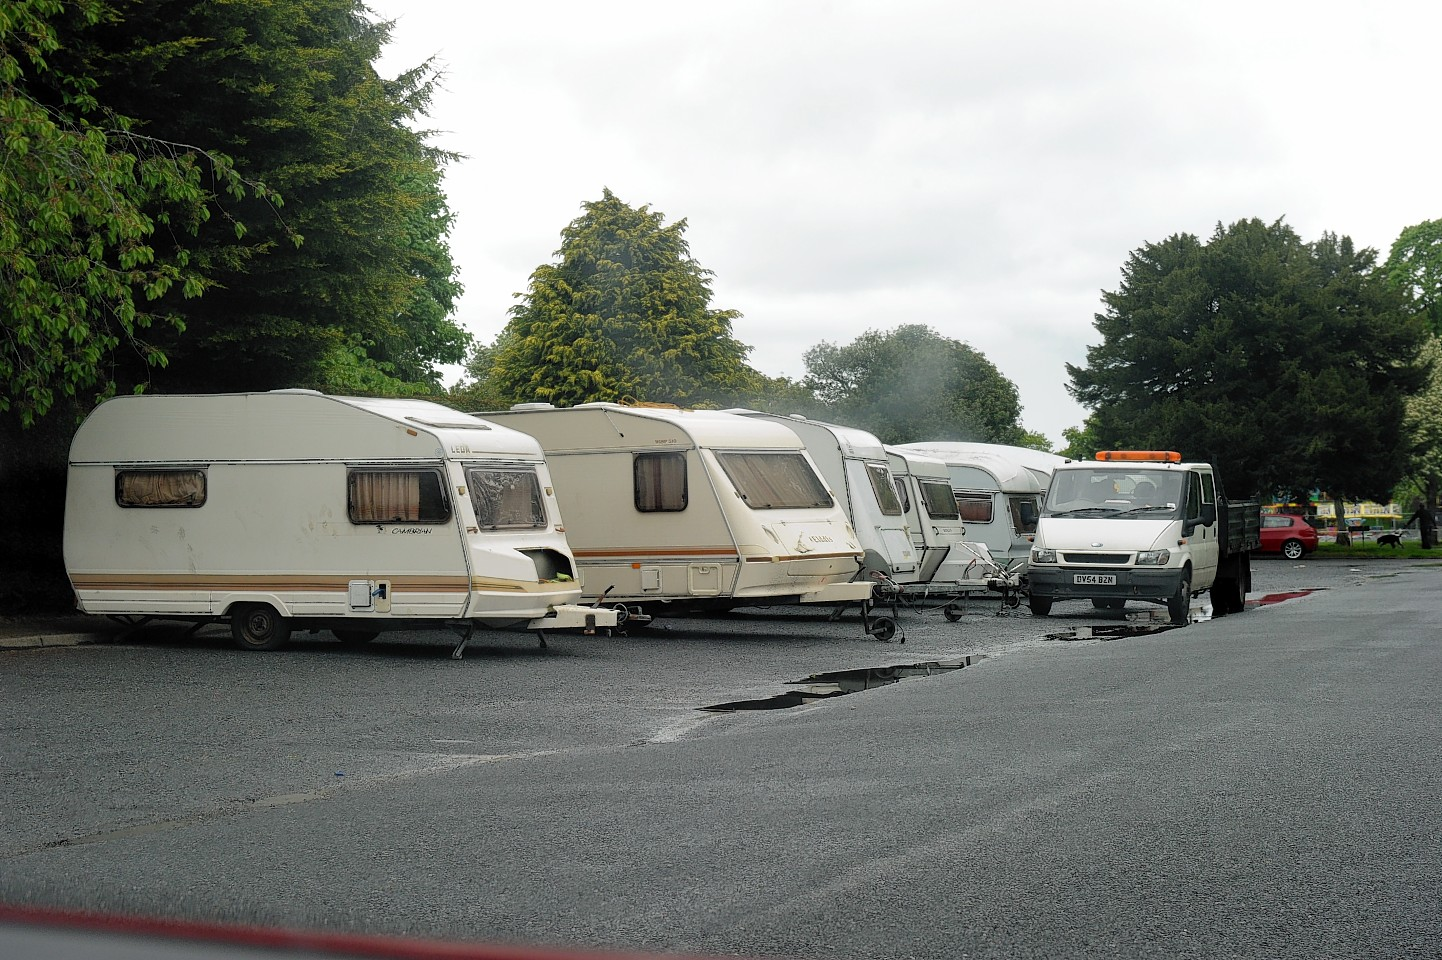 Travellers parked in Bught Park, Inverness